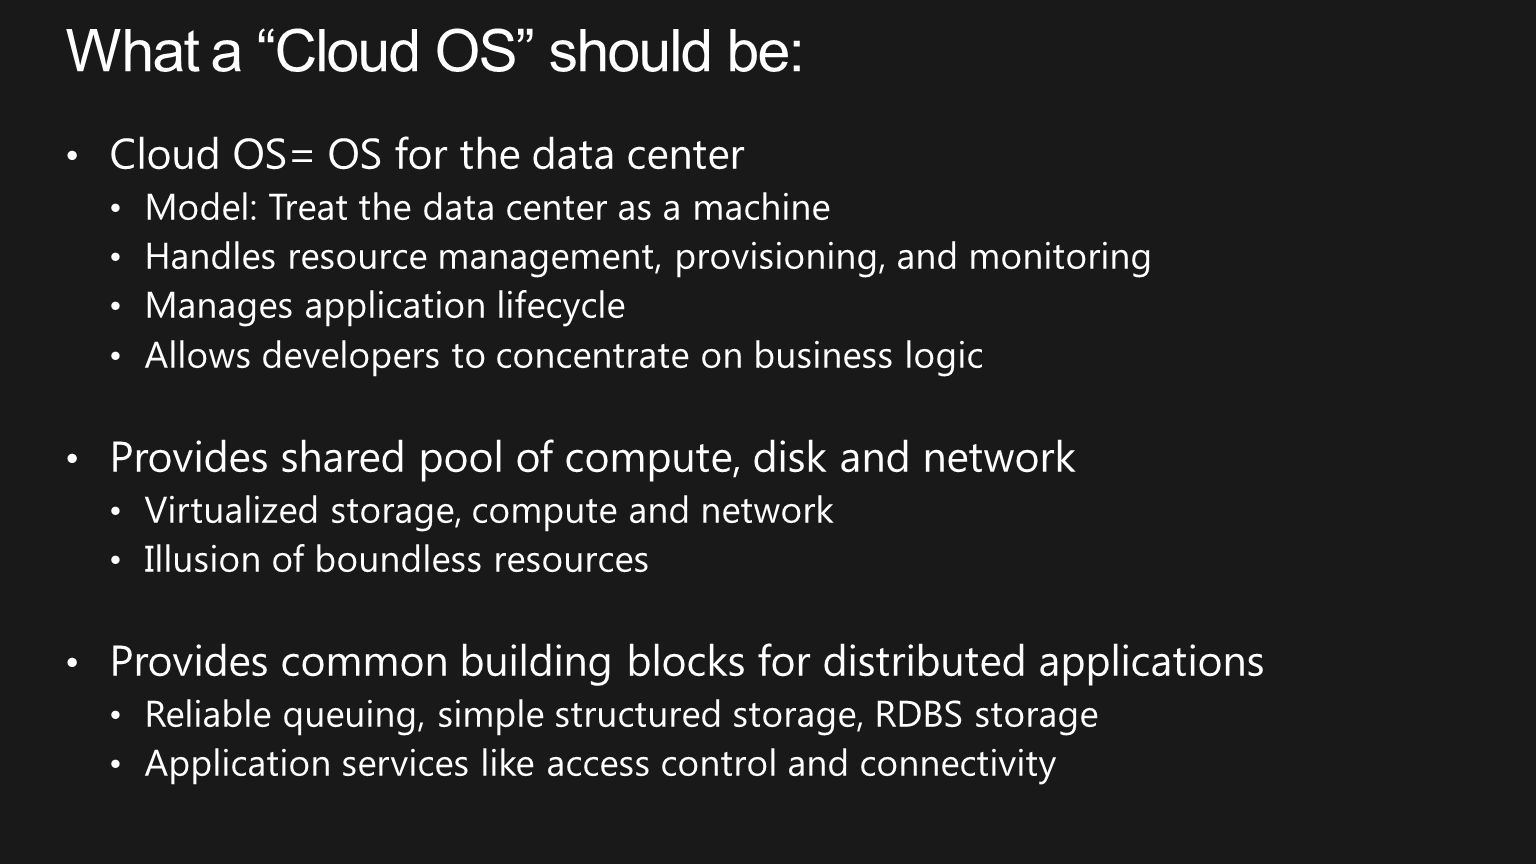 What a Cloud OS should be: